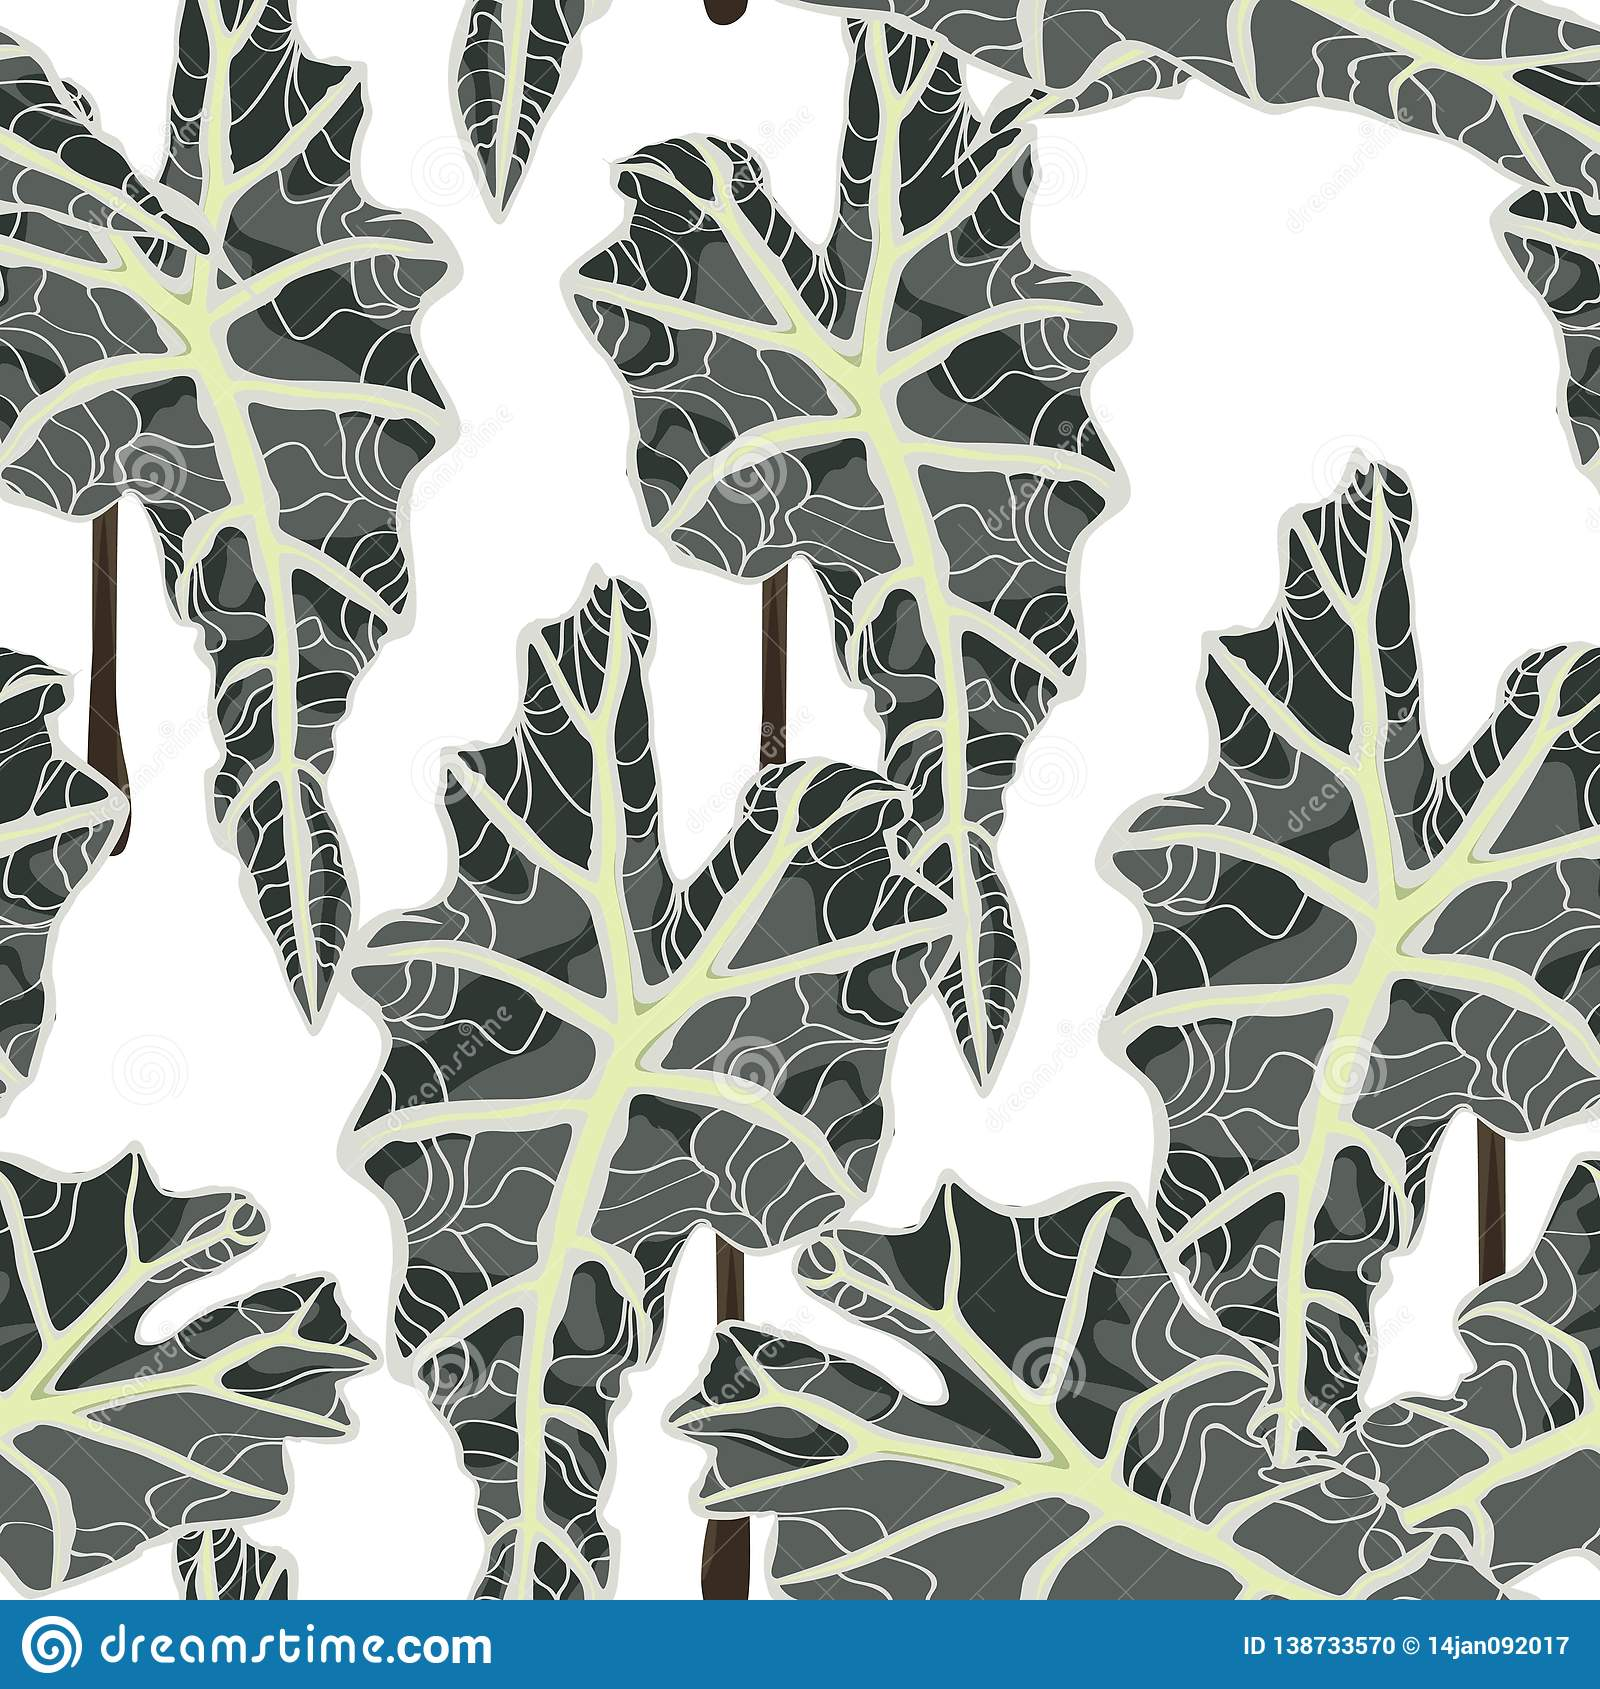 Tropical leaves, white background. Seamless pattern. Jungle foliage illustration. Exotic plant leaves.